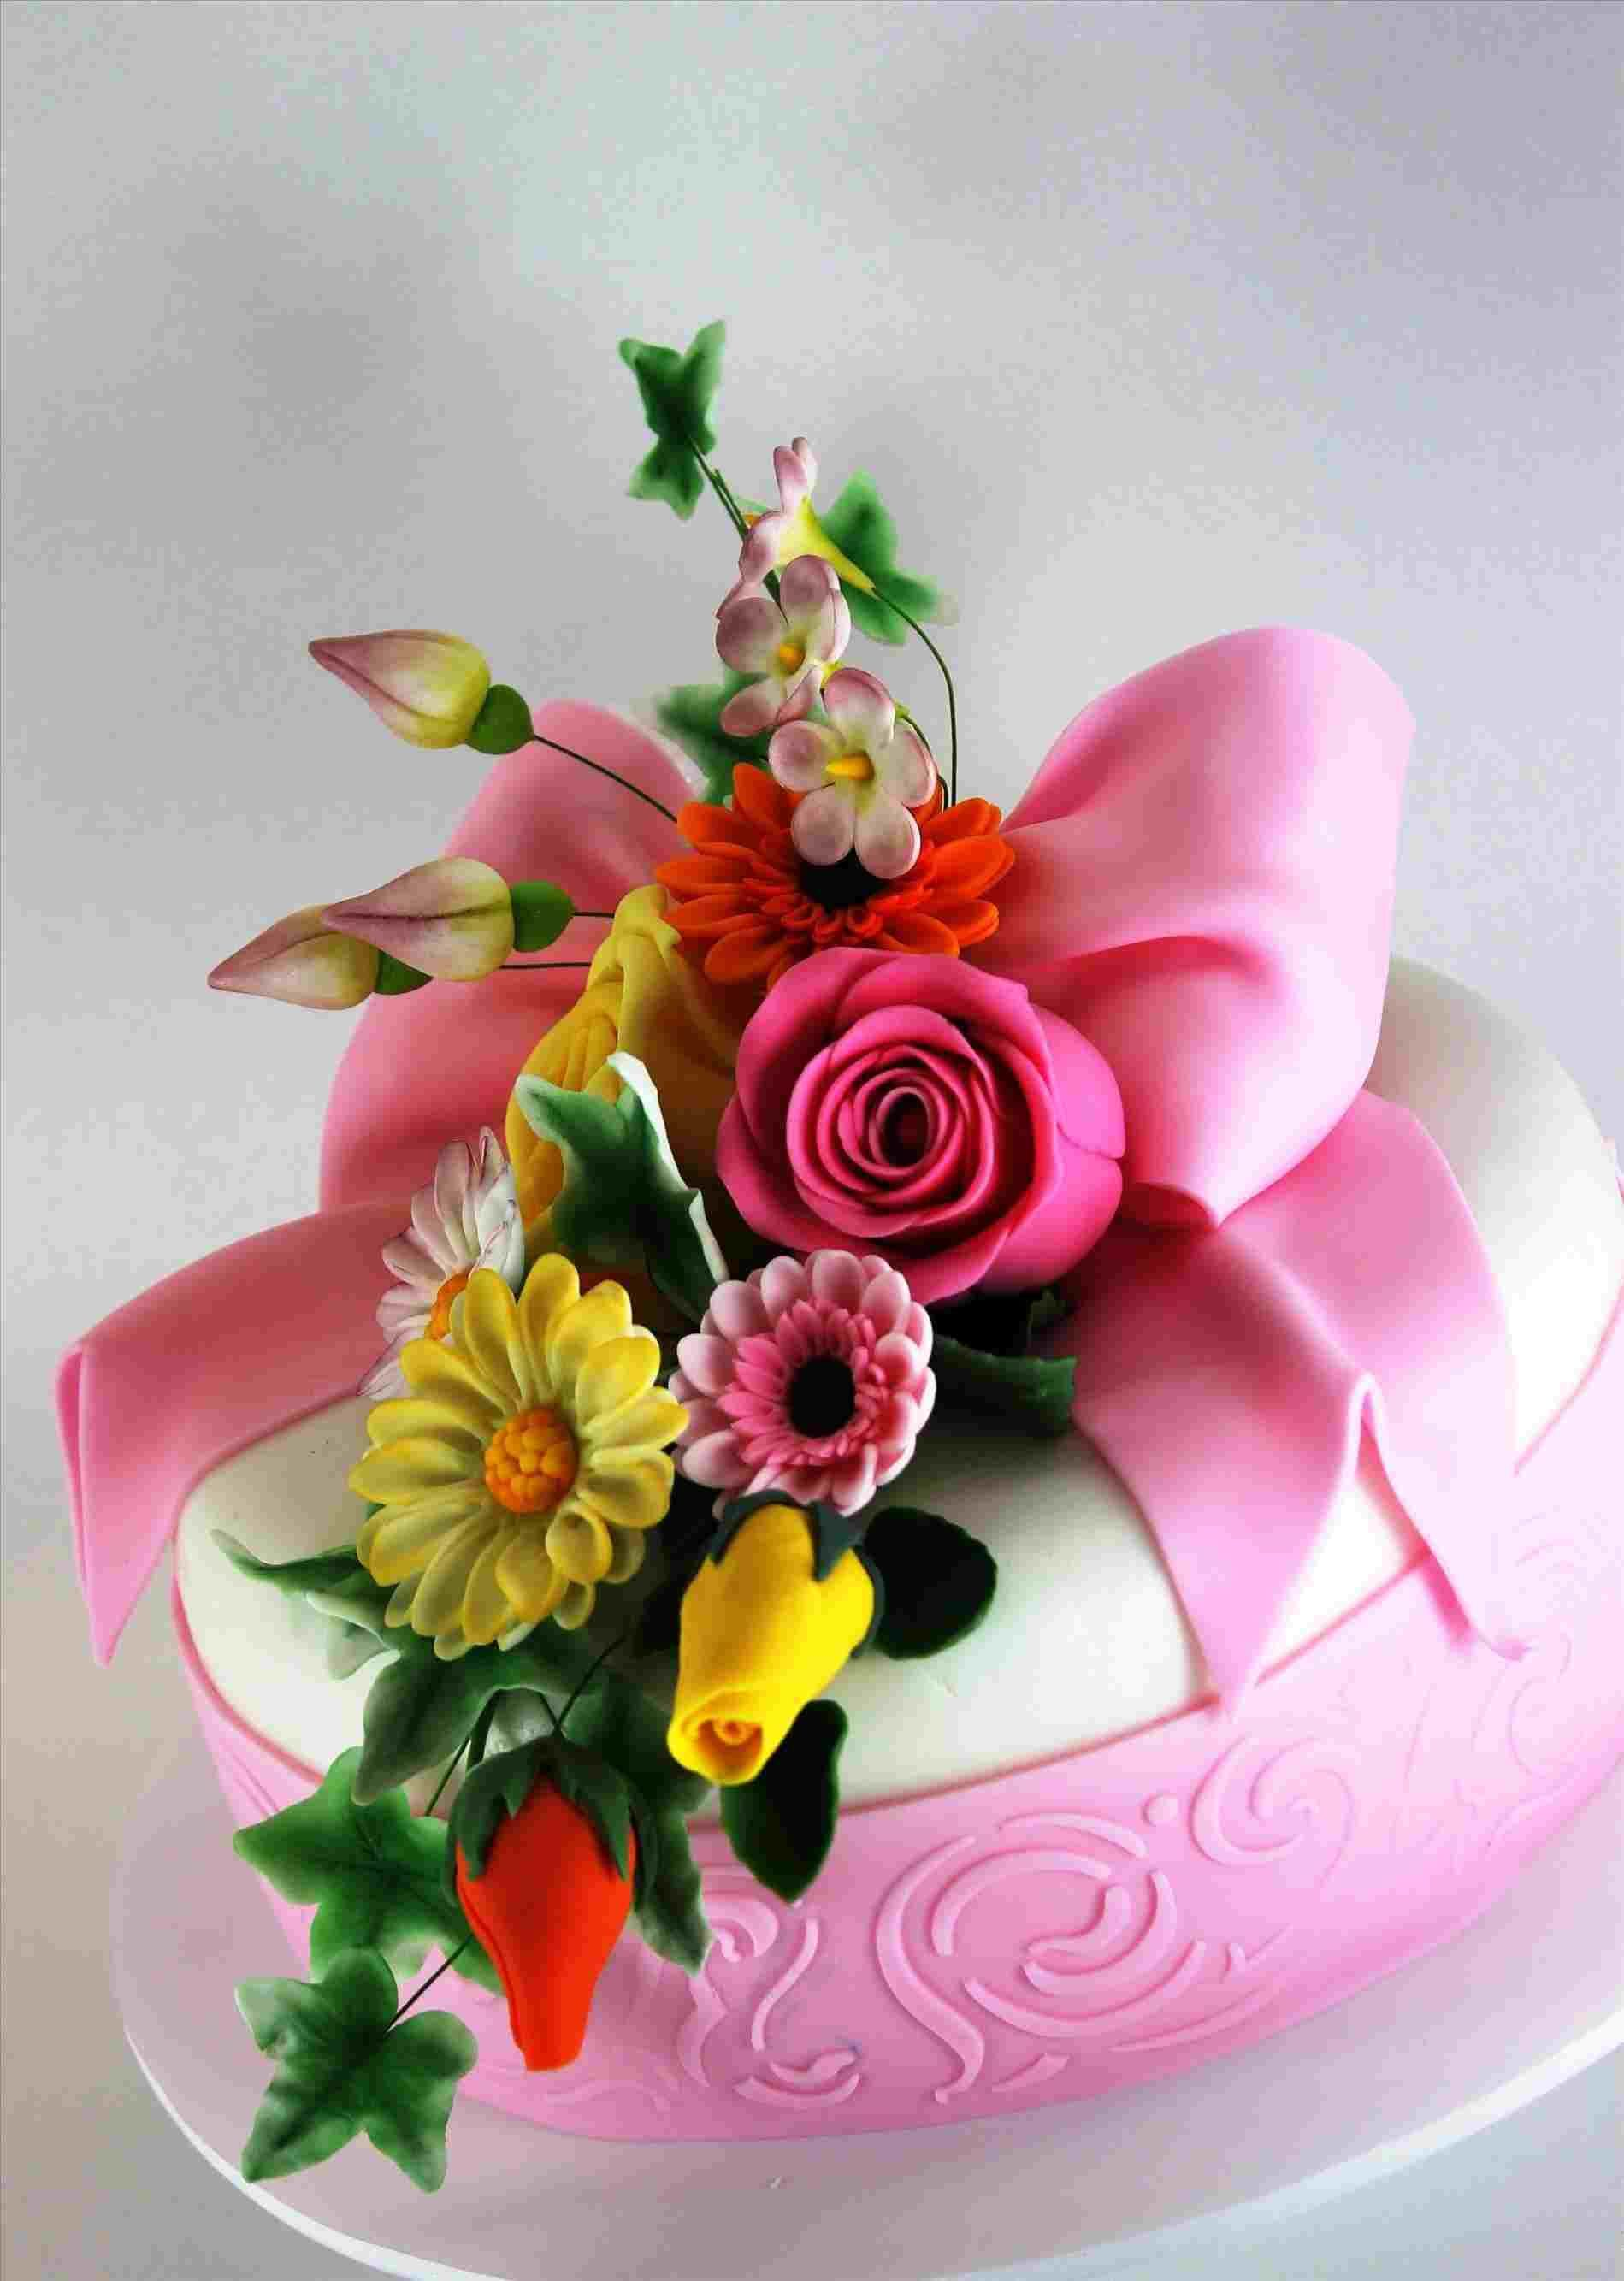 Birthday Cake With Flowers Bouquet Cake With Flower Happy Birthday Flower Cake Beautiful Birthday Cakes Birthday Cake With Flowers